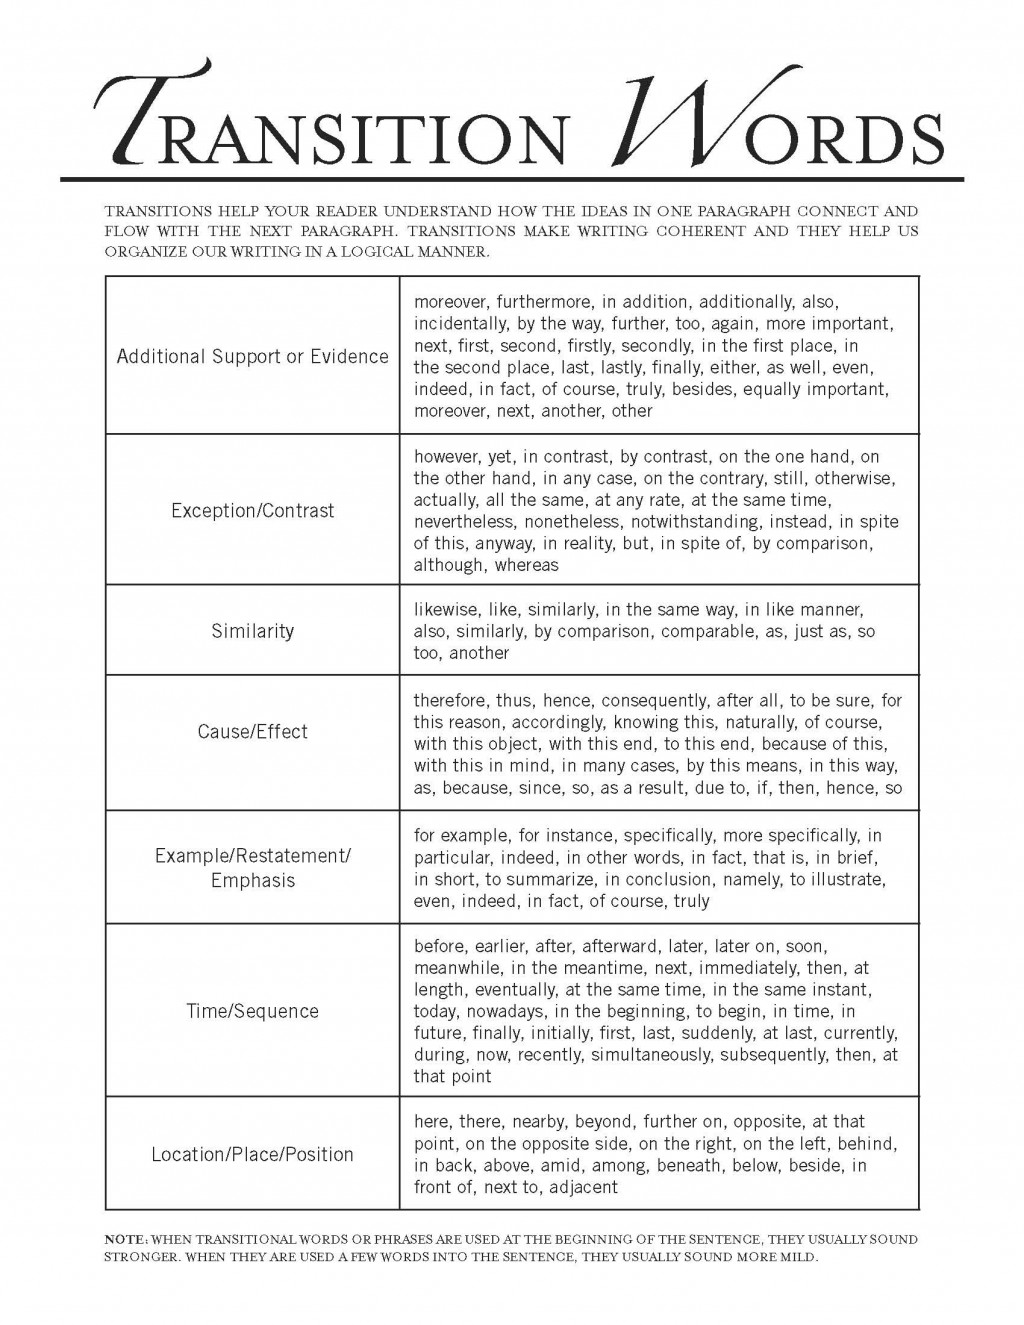 002 Essay Example Argumentative Transitions Transitionsl1 Page 1 Stupendous Transition Phrases Large